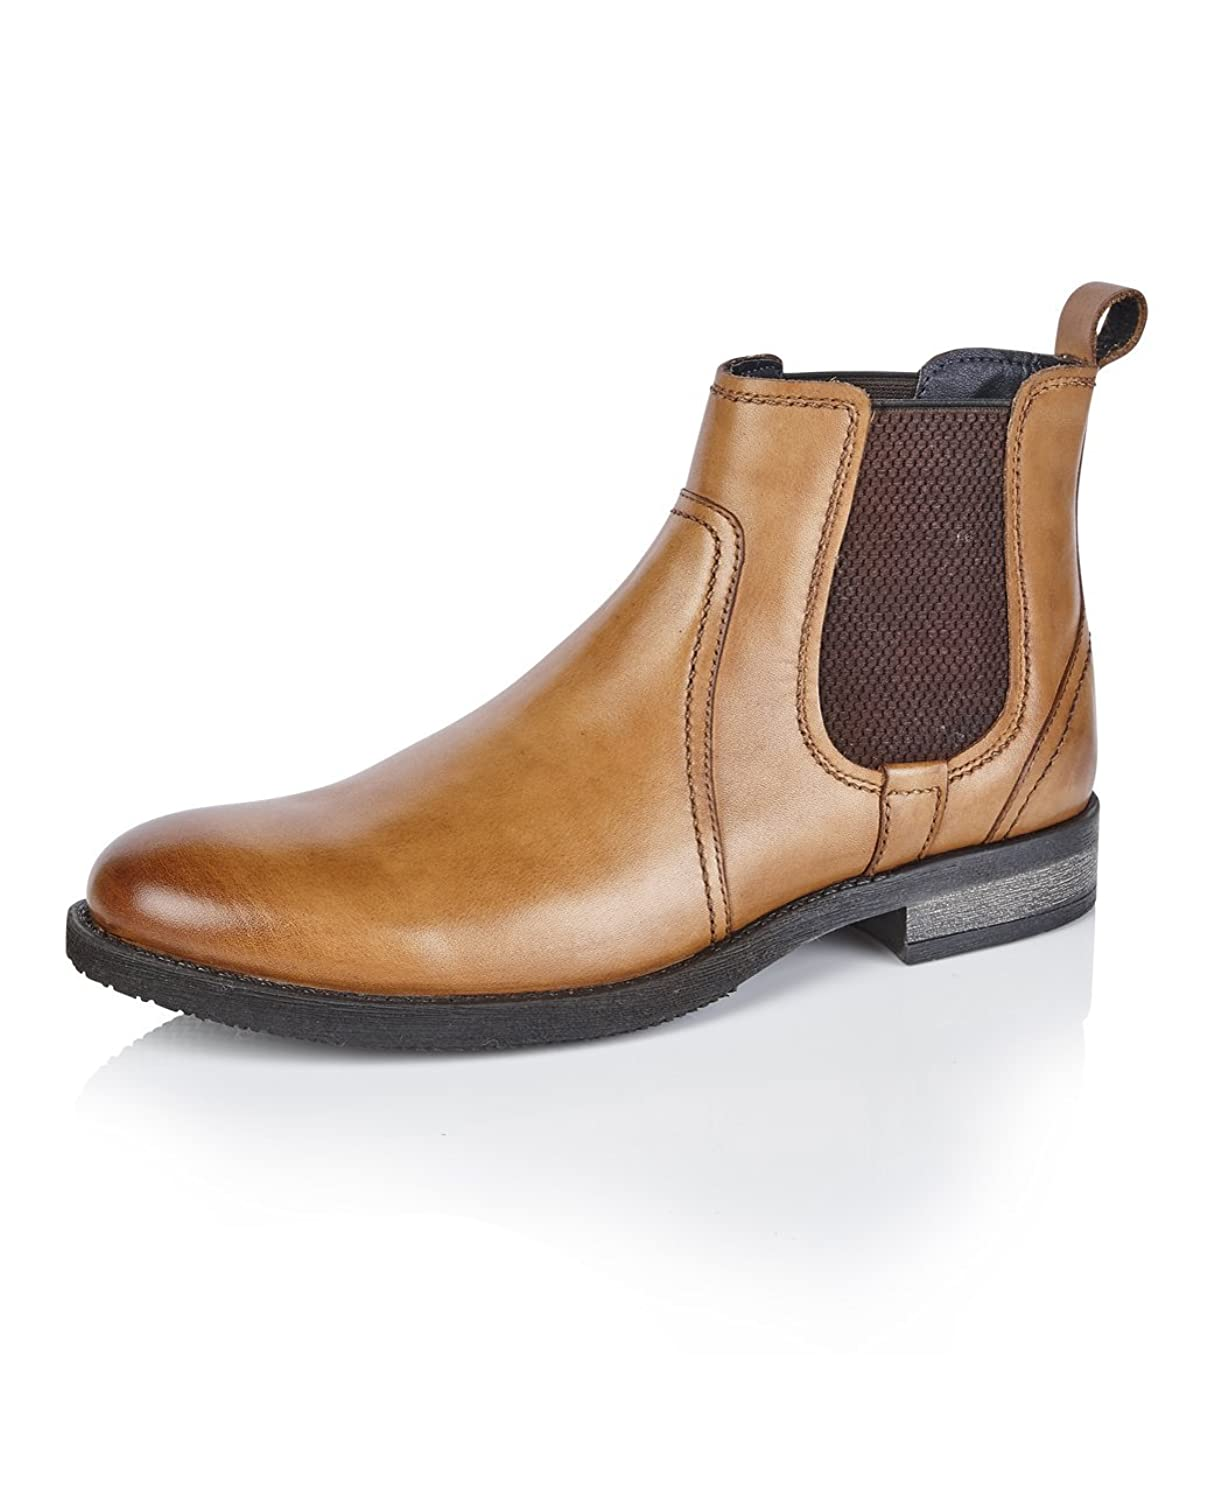 Silver Street Solebay Newton Tan Quality Leather Chelsea Boots:  Amazon.co.uk: Shoes & Bags